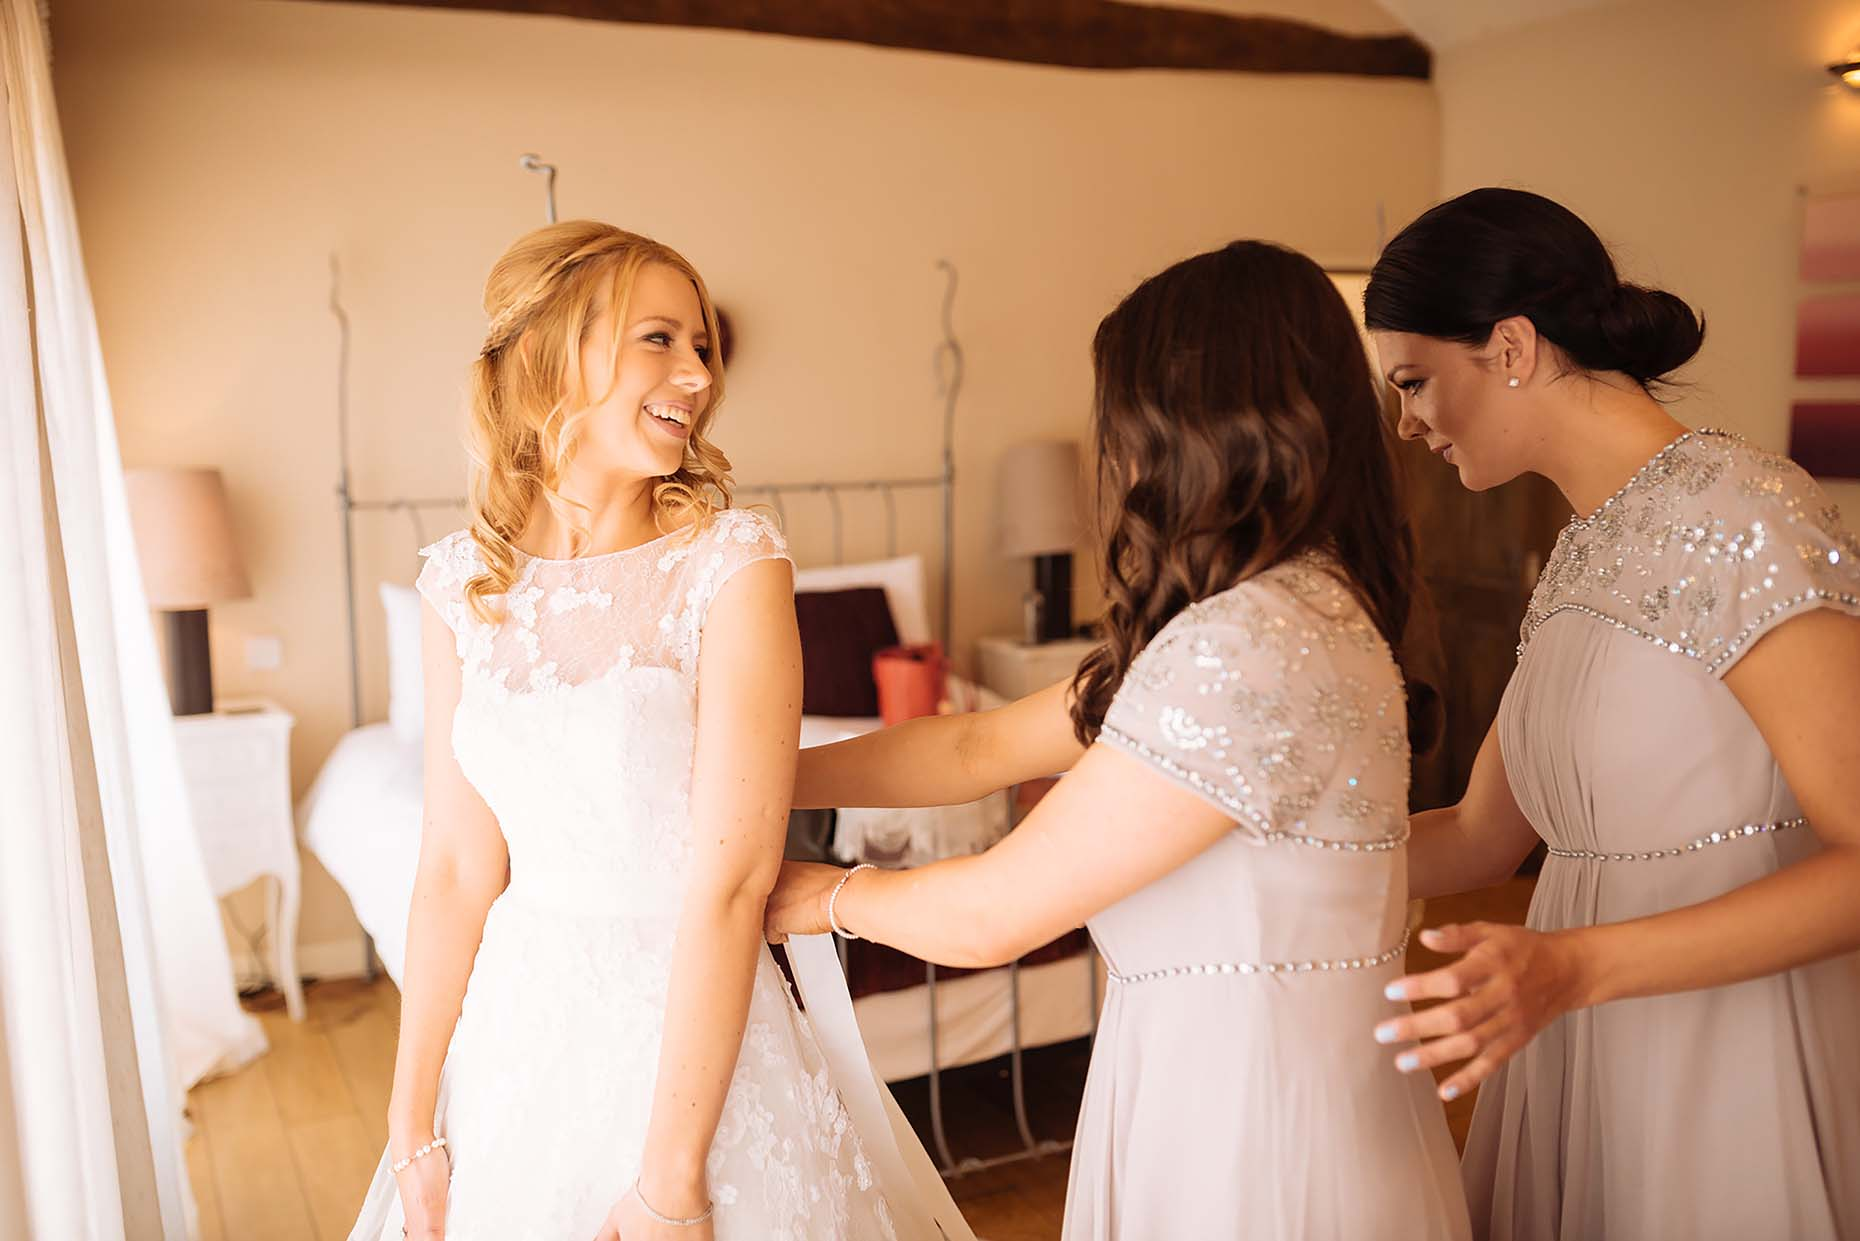 bride-with-bridesmaids-putting-on-dress-northampton-wedding-photographer-emma-dodmoor-12